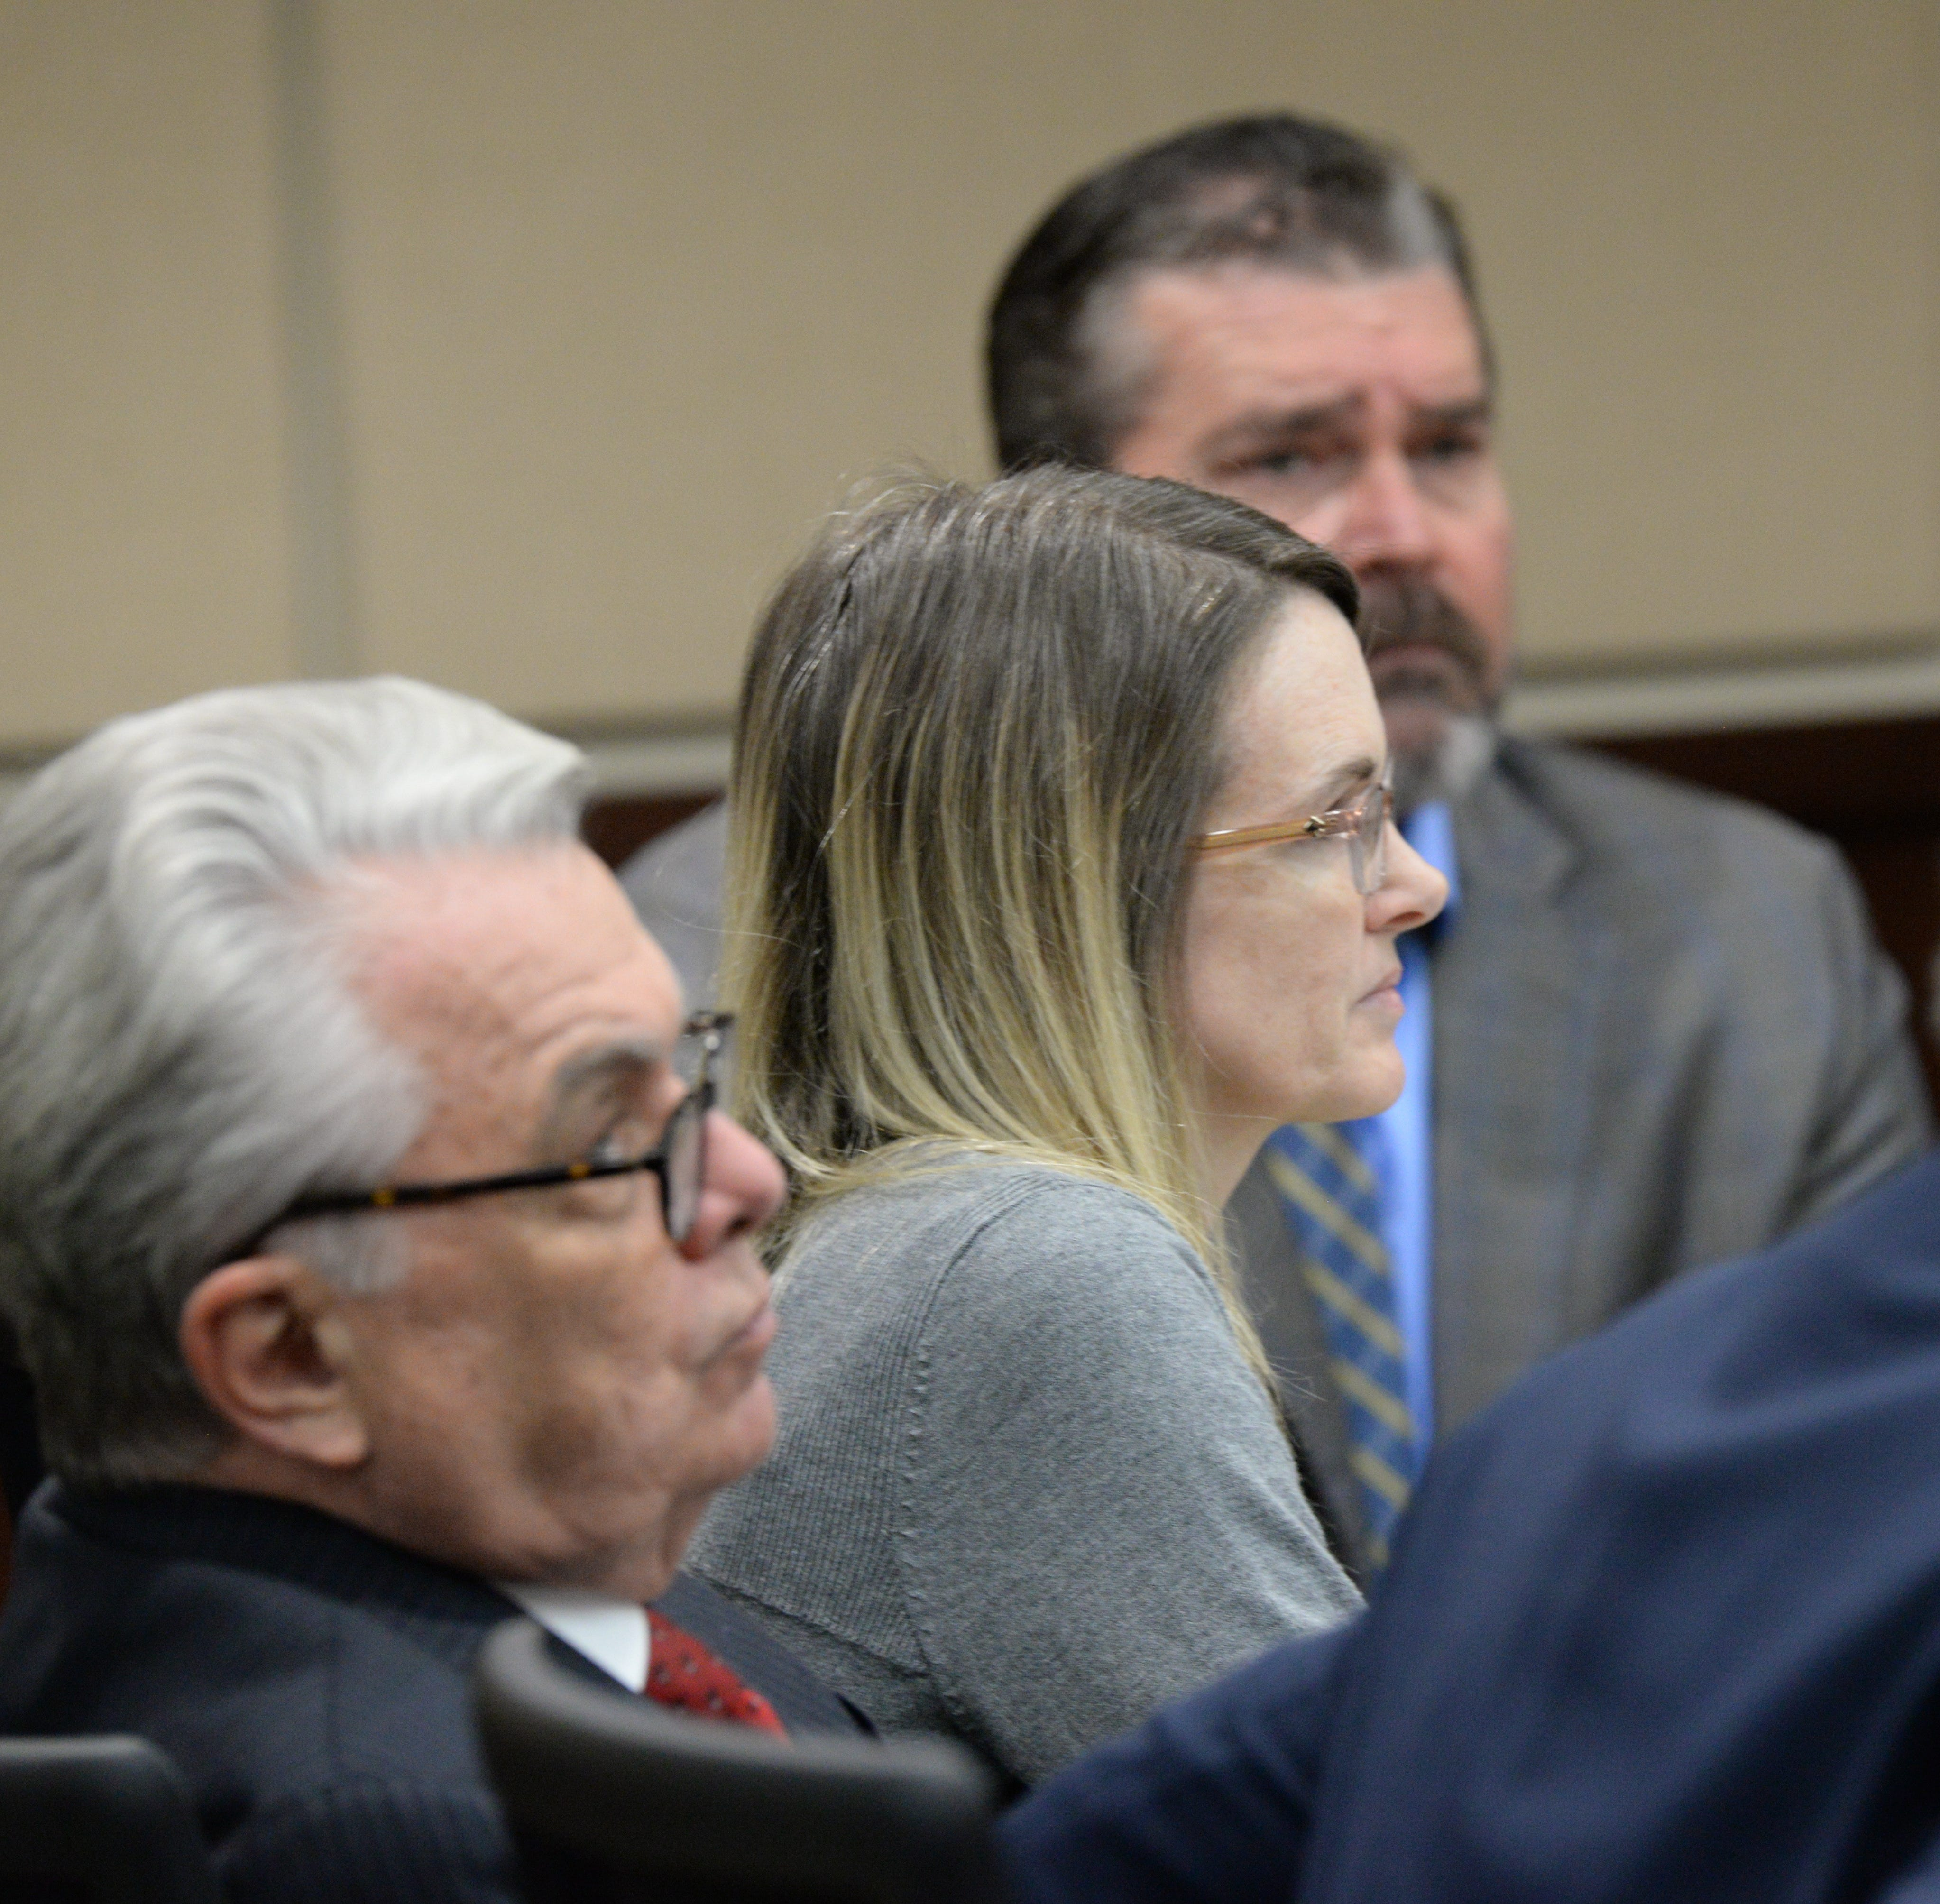 Denise Williams murder trial updates: Jurors have reached a verdict